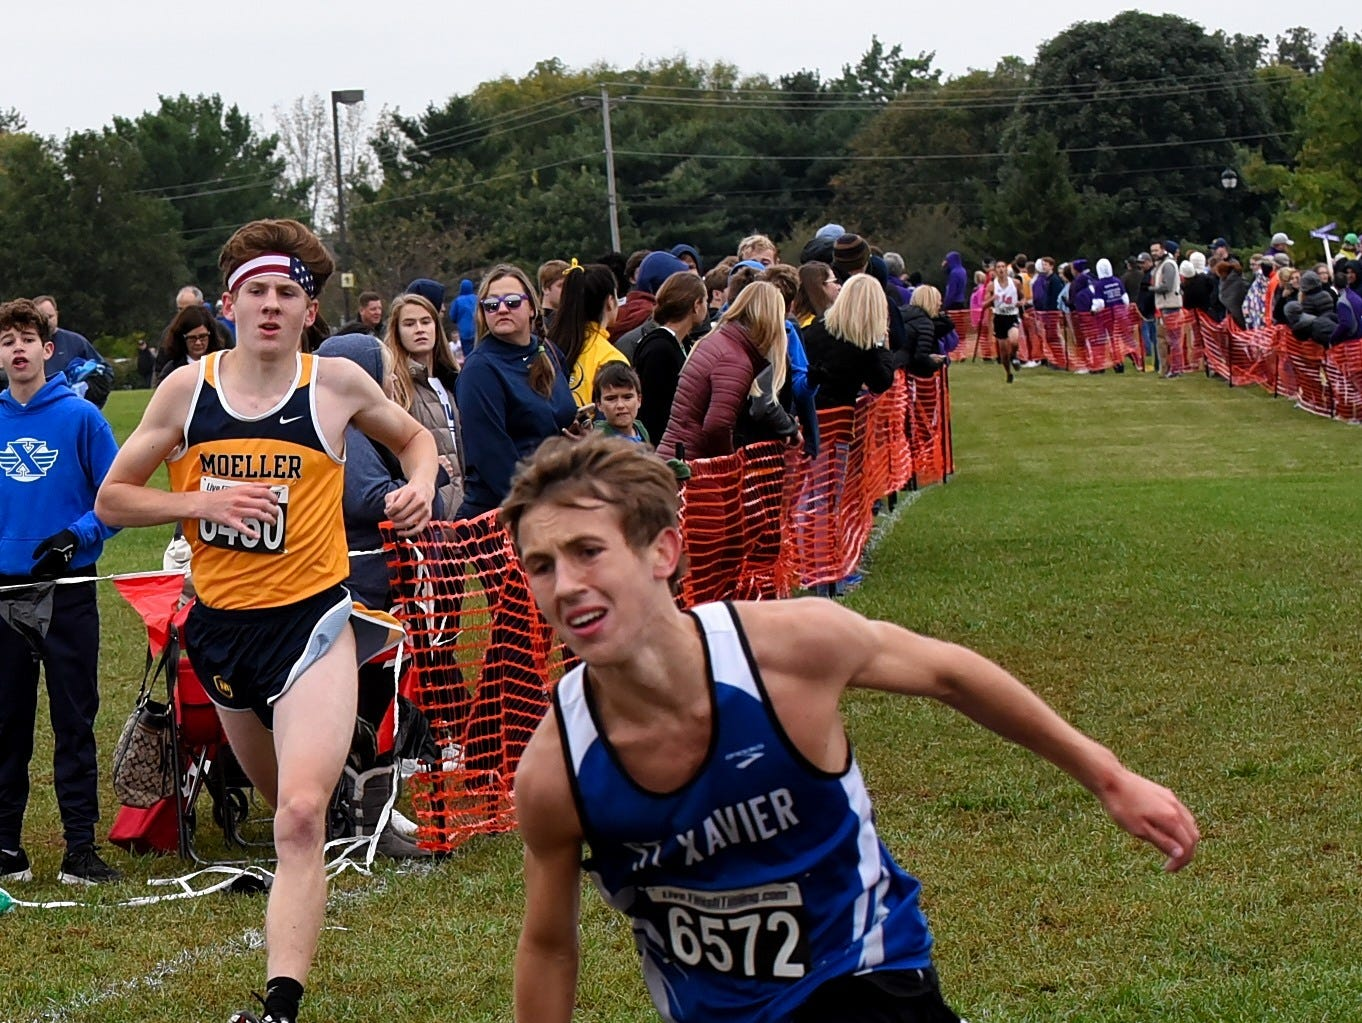 William Harmeyer of St. Xavier carries his shoe as he passes the finish at the 2018 GCL/GGCL Cross Country Championships, October 13, 2018.